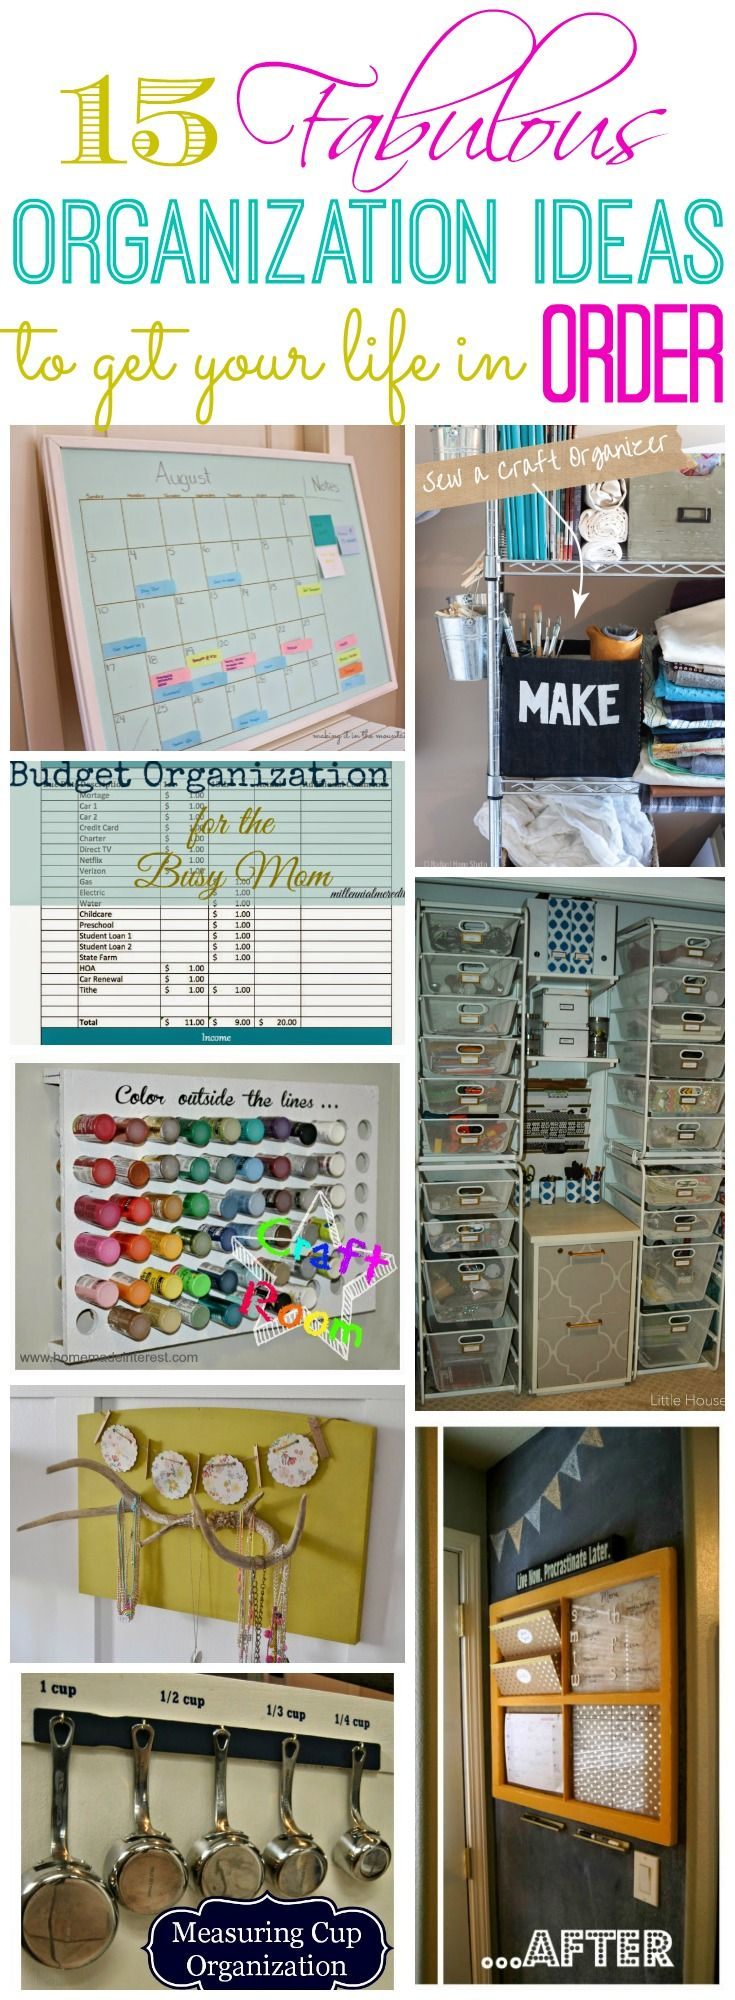 15 fabulous organization ideas to get your life in order at The Happy Housie